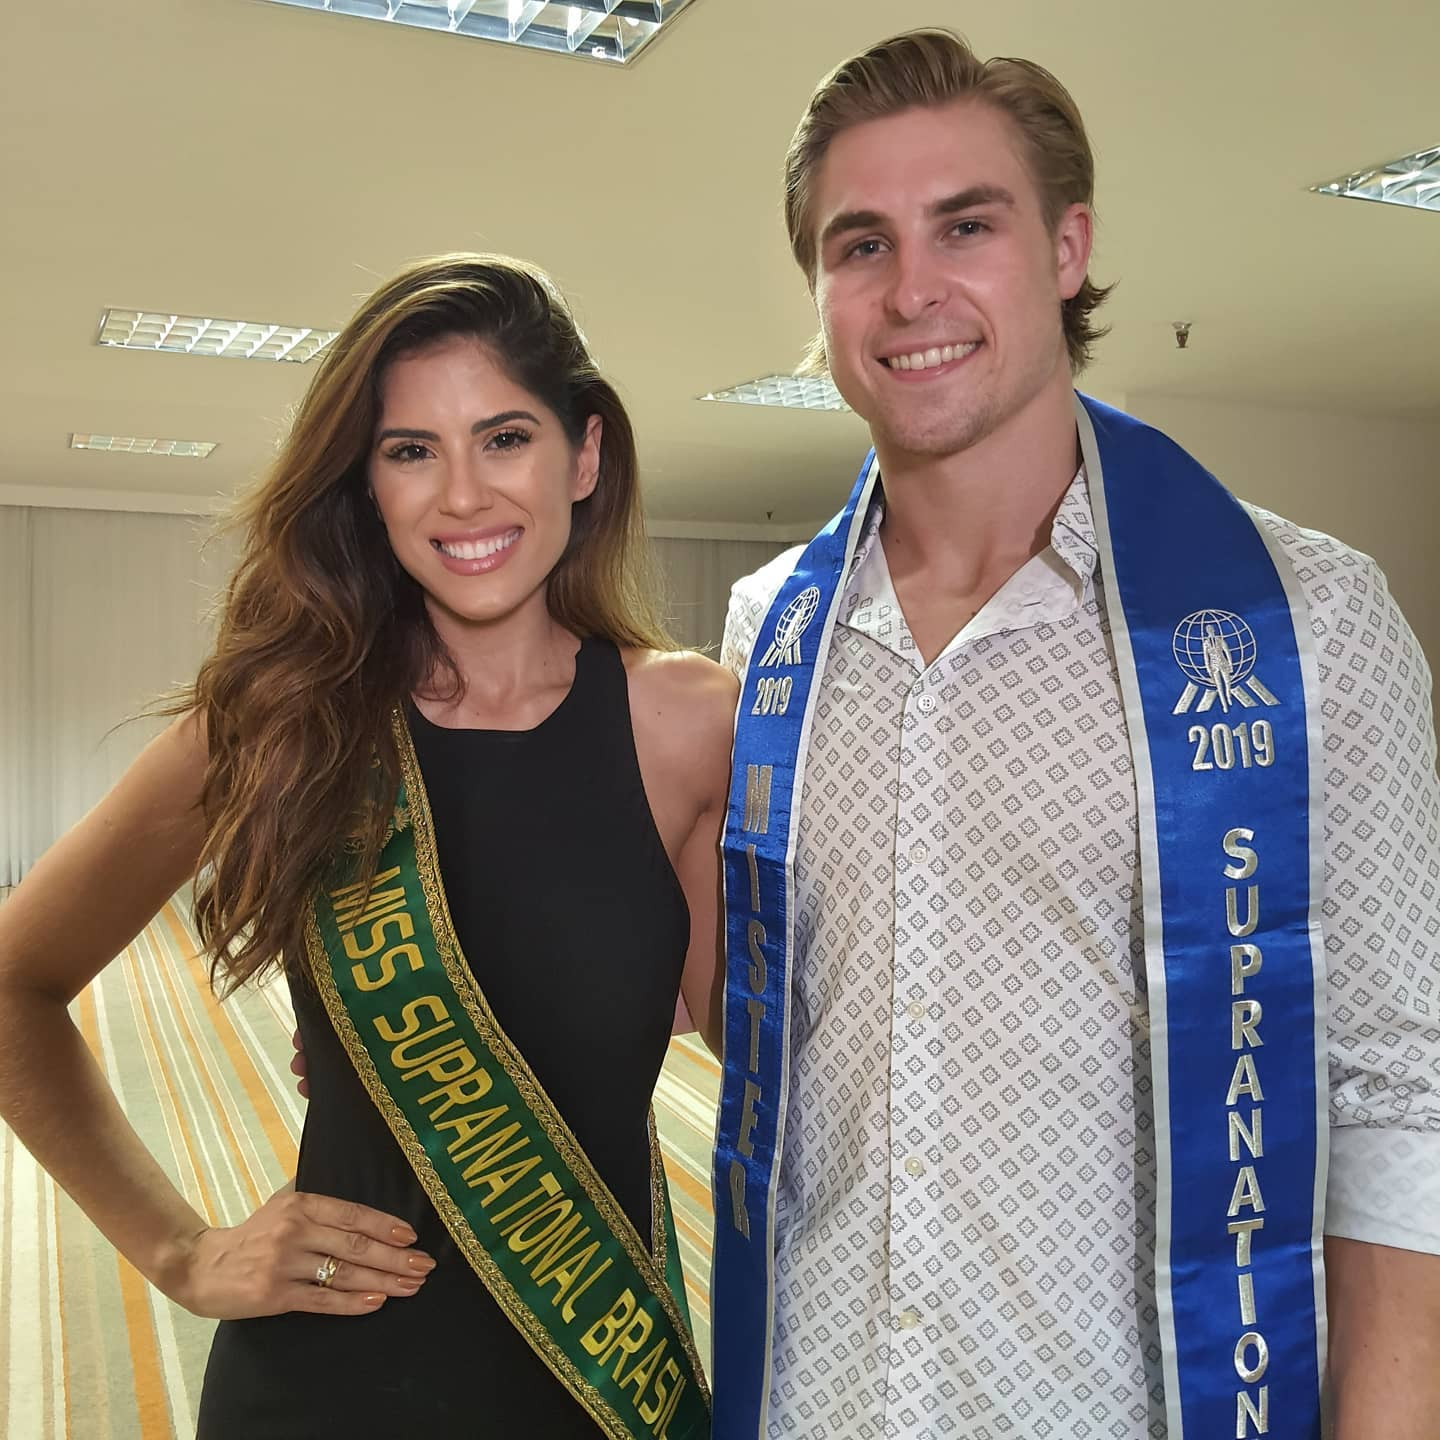 mr supranational 2019 junto a miss supranational brazil 2020. Q5pkrl2x